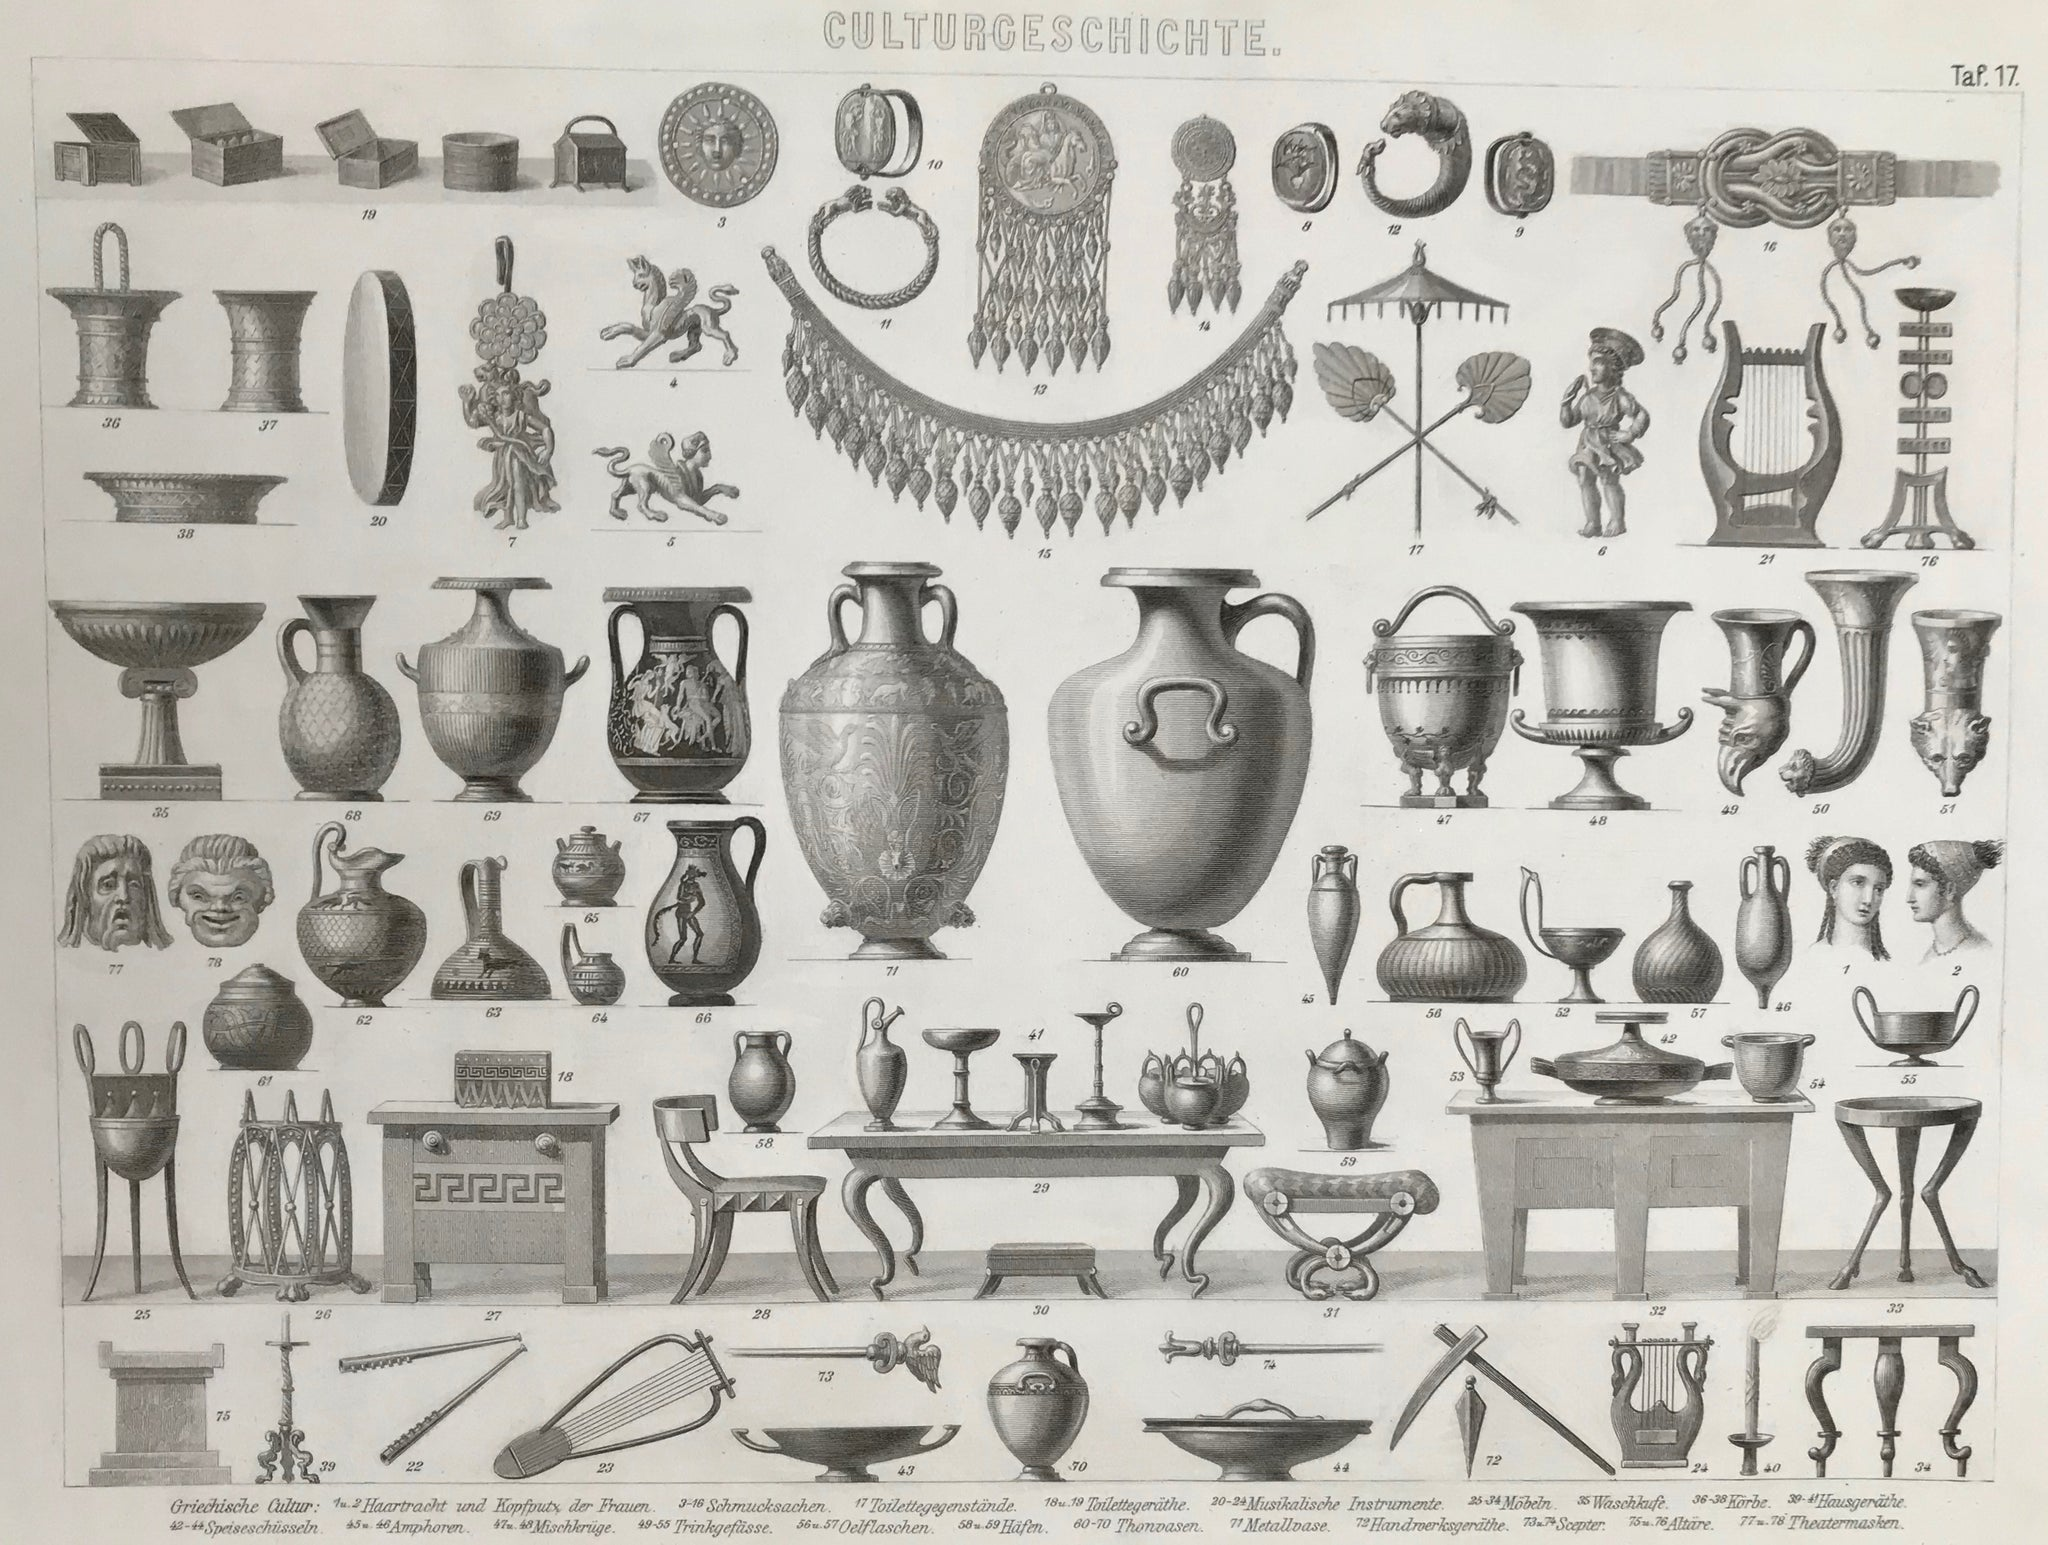 Culturgeschichte (Cultural History) Ancient Greeks  Steel engraving ca 1860. Published by Brockhaus in Leipzig.